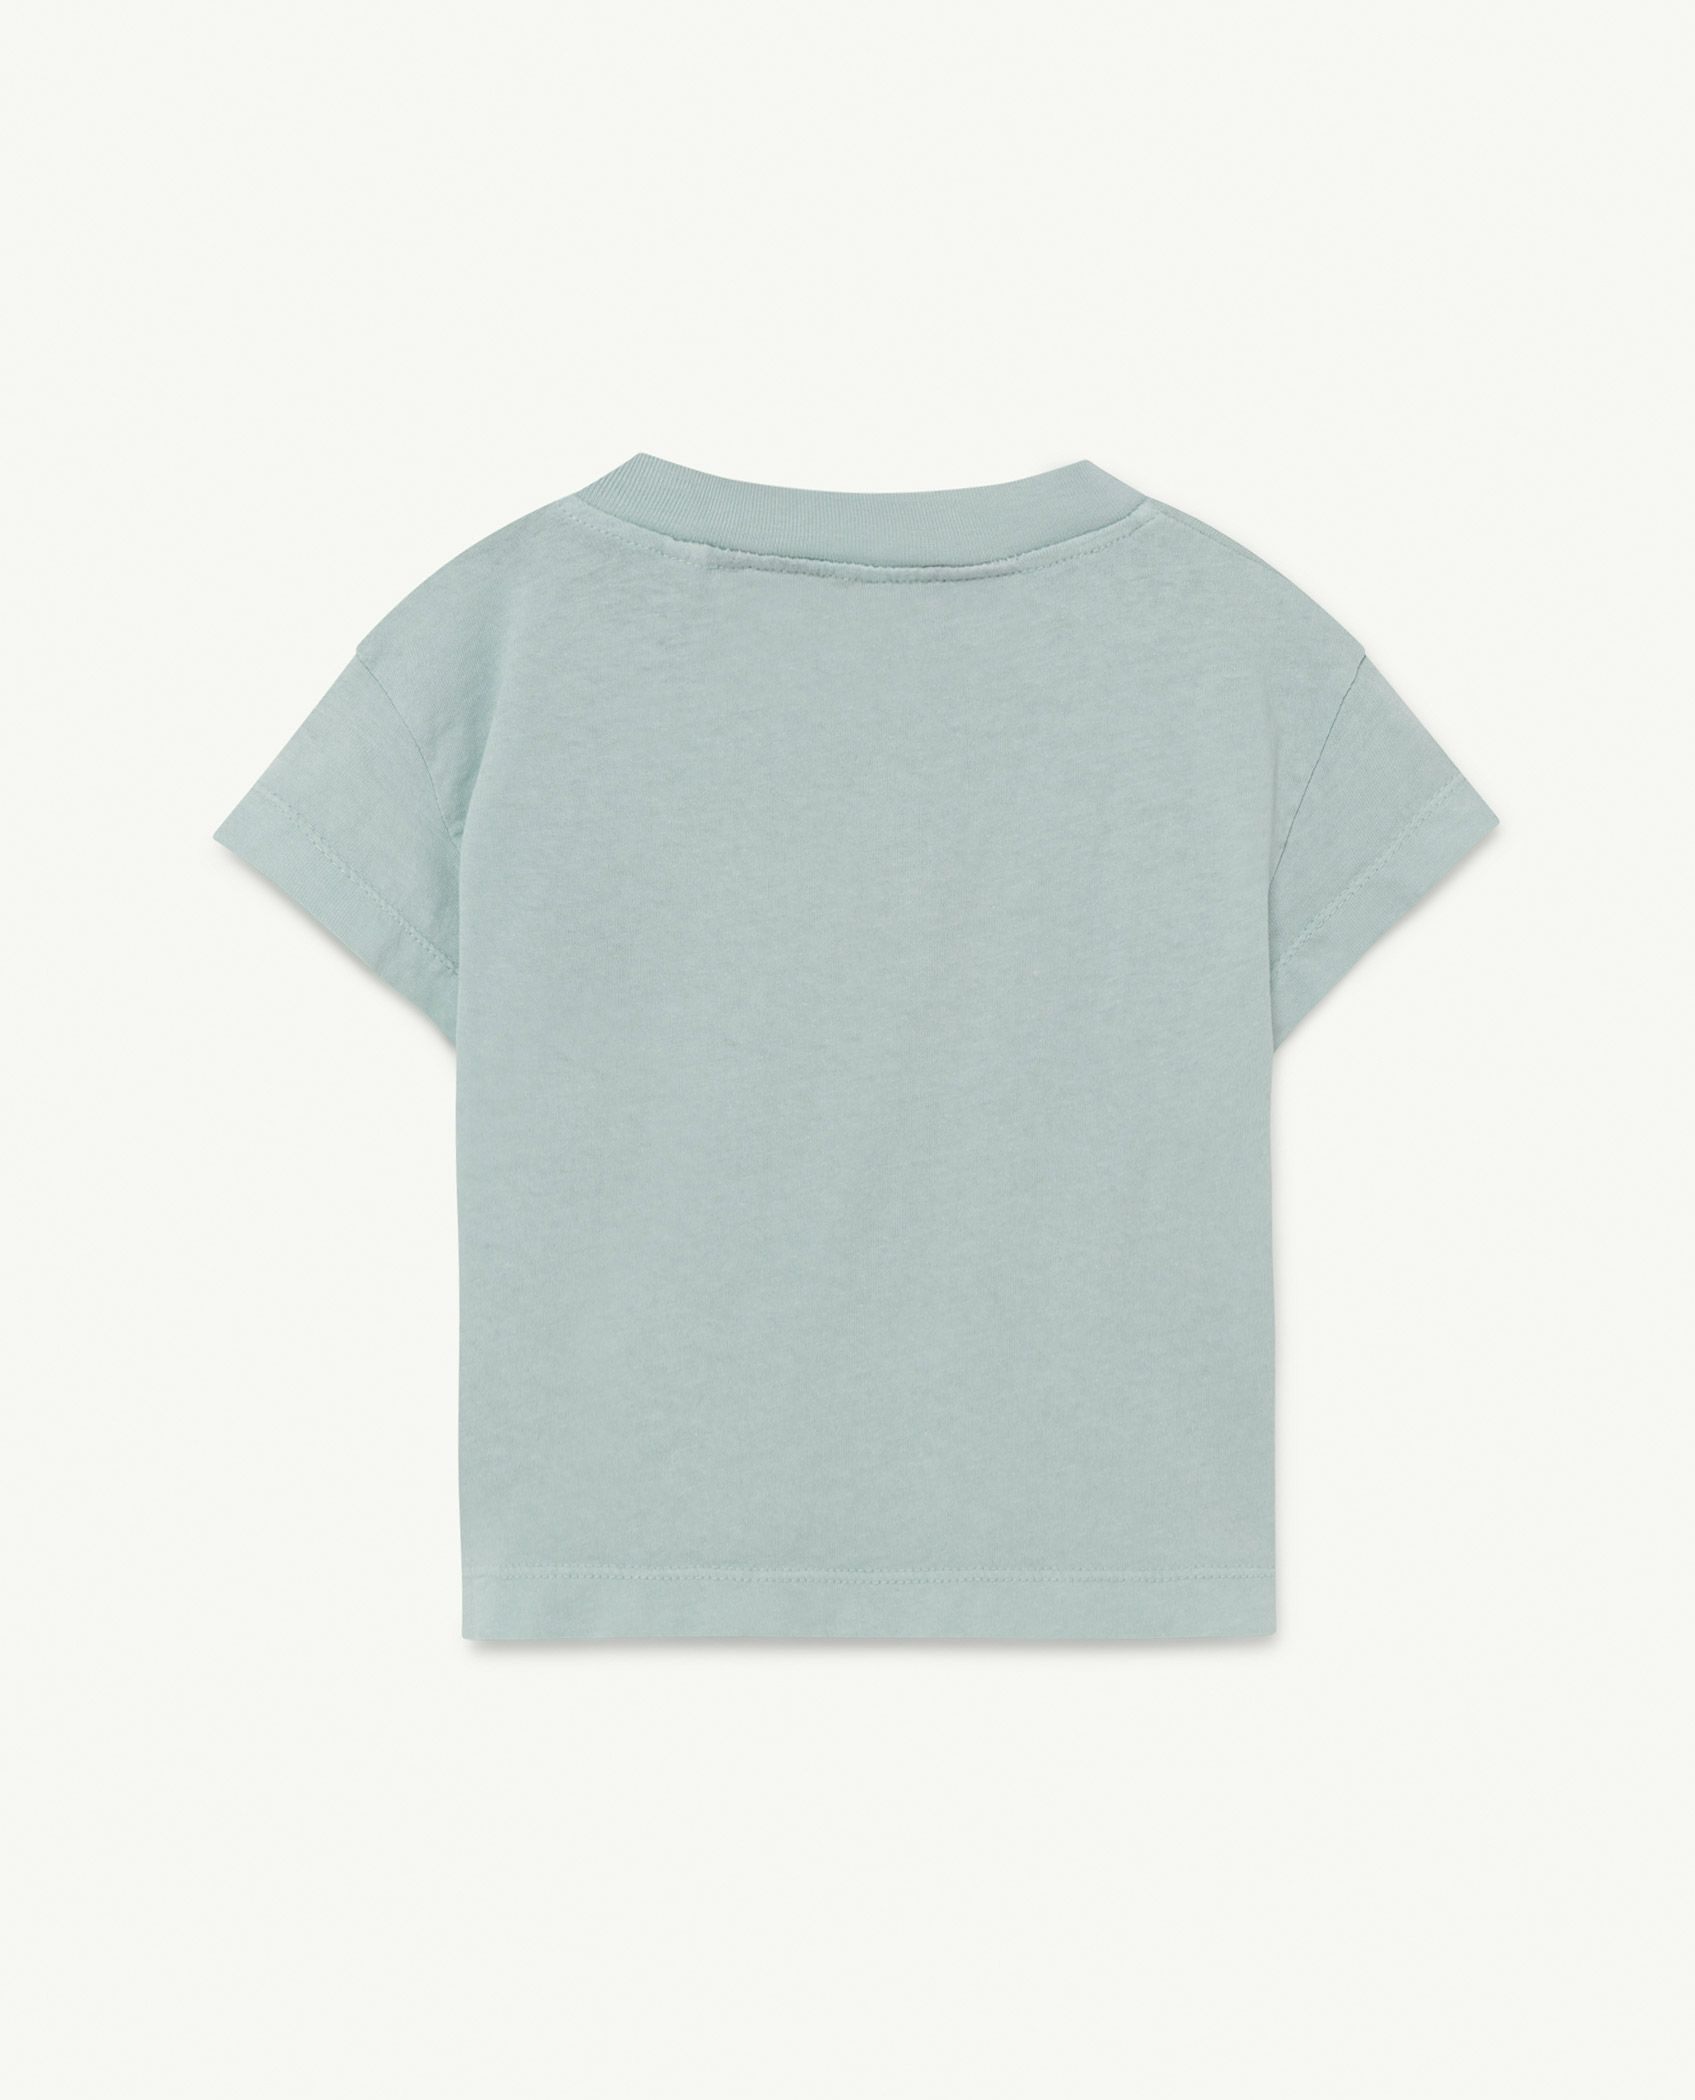 Blue Lindo Rooster Baby T-shirt img-2